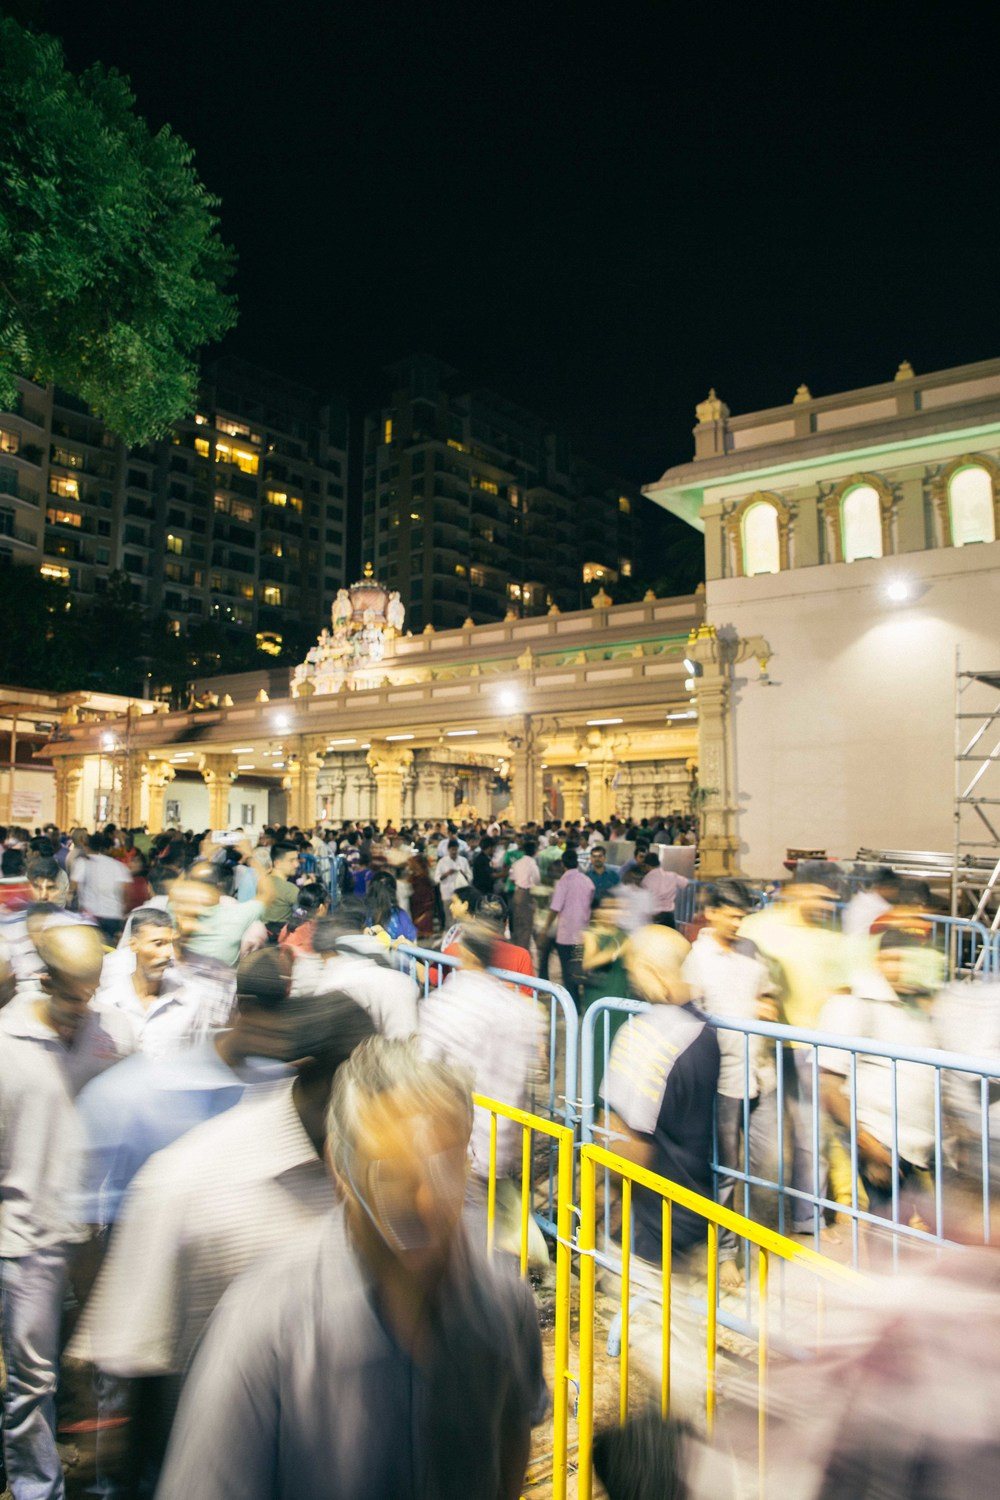 Devotees entering and exiting the temple.